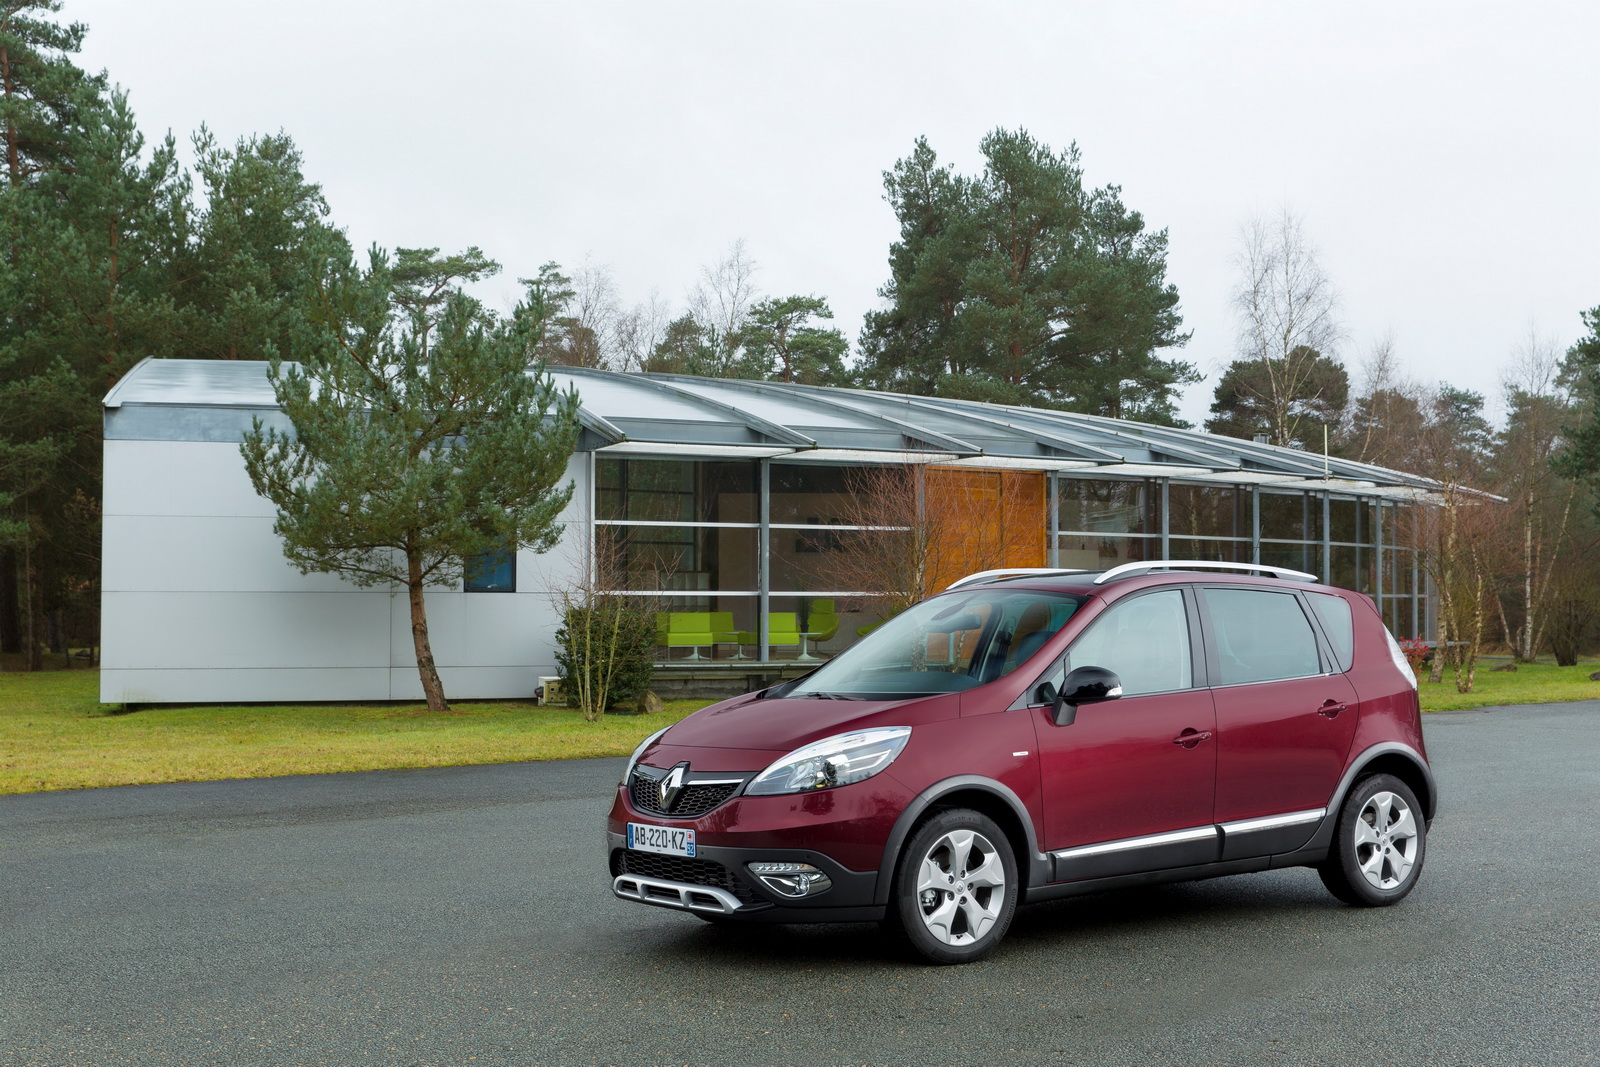 renault sc nic xmod the market s leading mpv in crossover mode. Black Bedroom Furniture Sets. Home Design Ideas